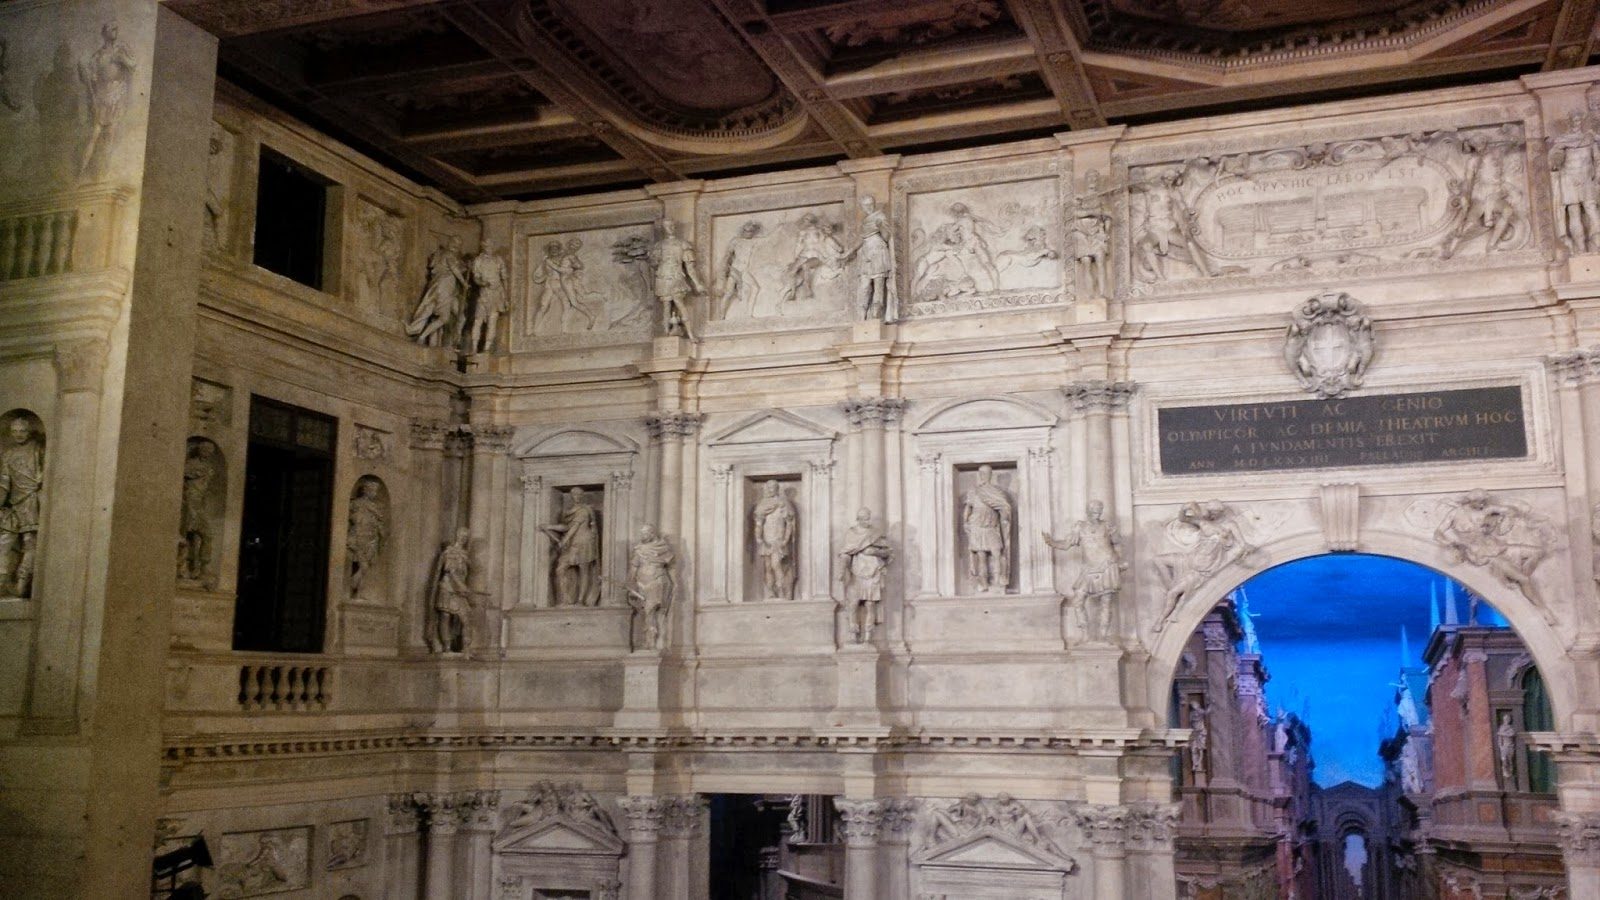 The richly ornamented stage of Teatro Olimpico in Vicenza